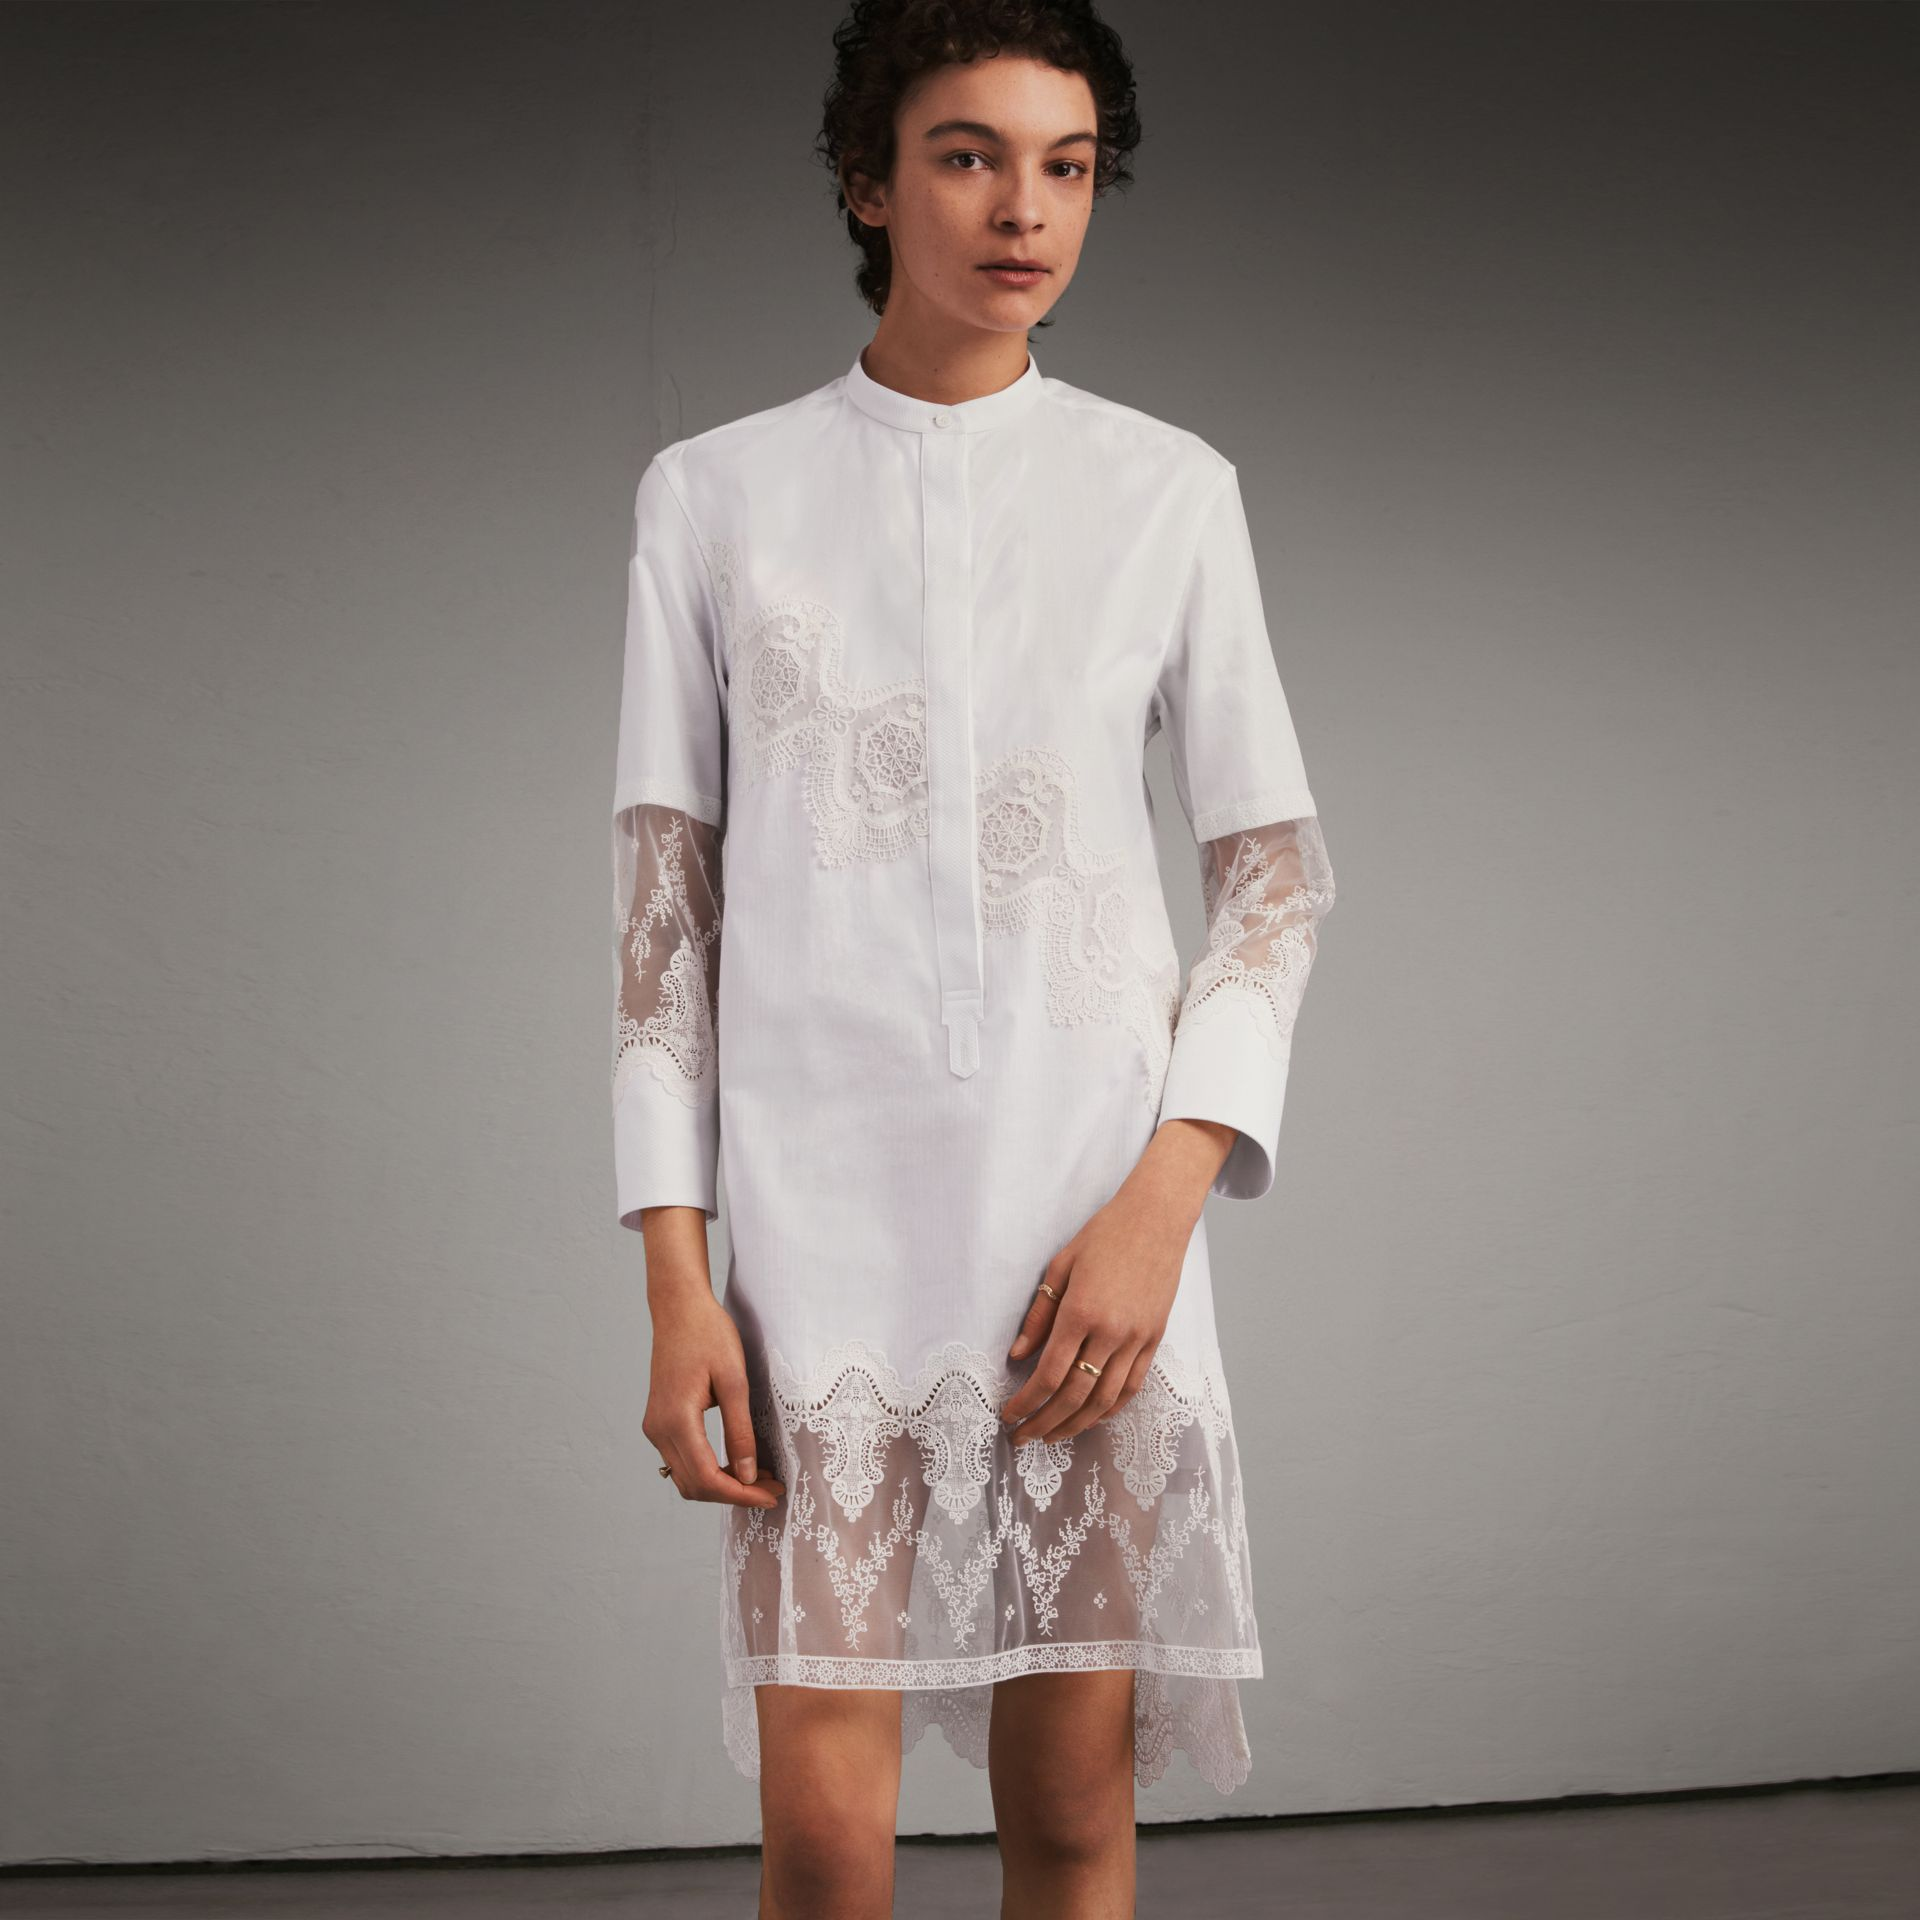 Lace Cutwork Cotton Shirt Dress in White - Women | Burberry - gallery image 1